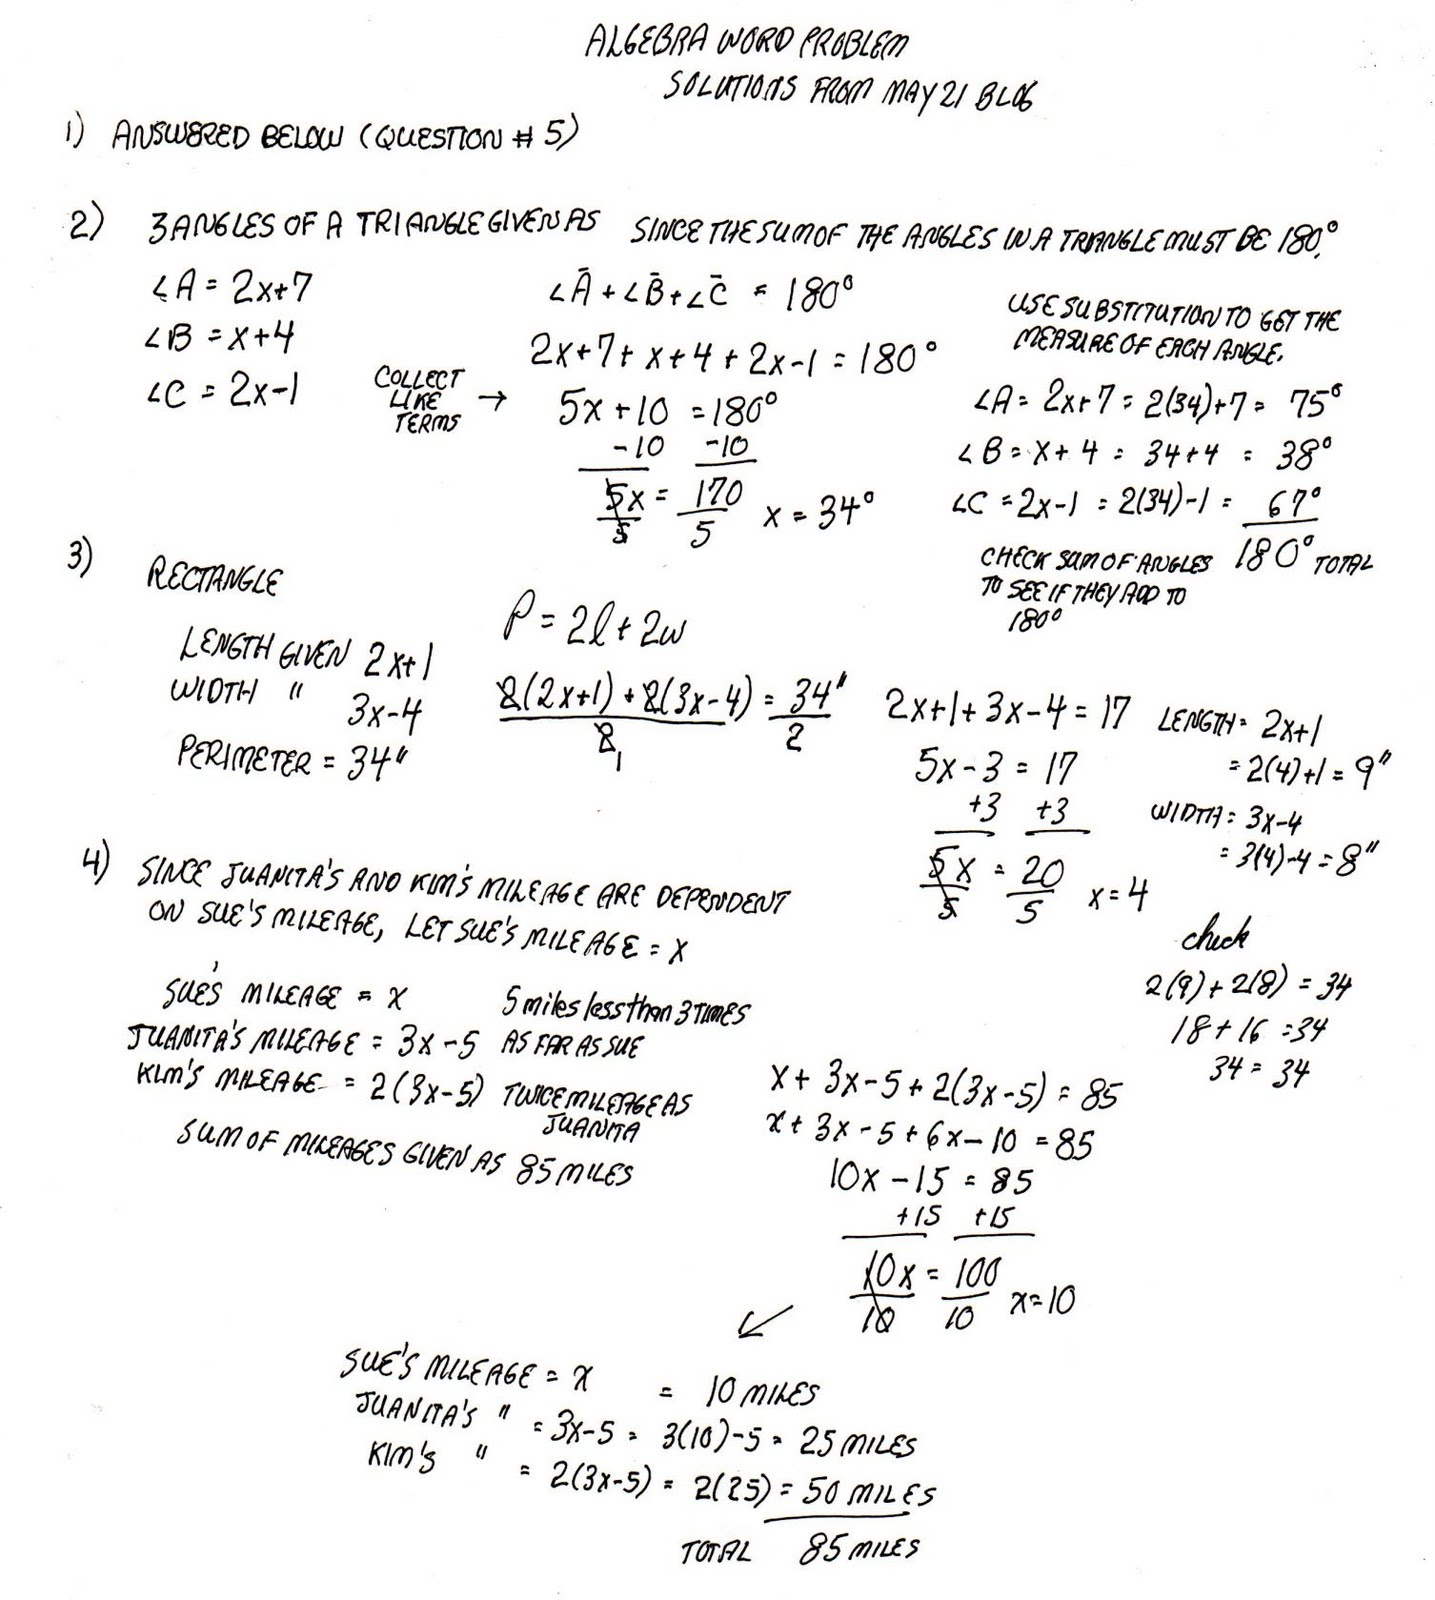 cobb adult ed math solutions to st algebra word problems solutions to 21st algebra word problems